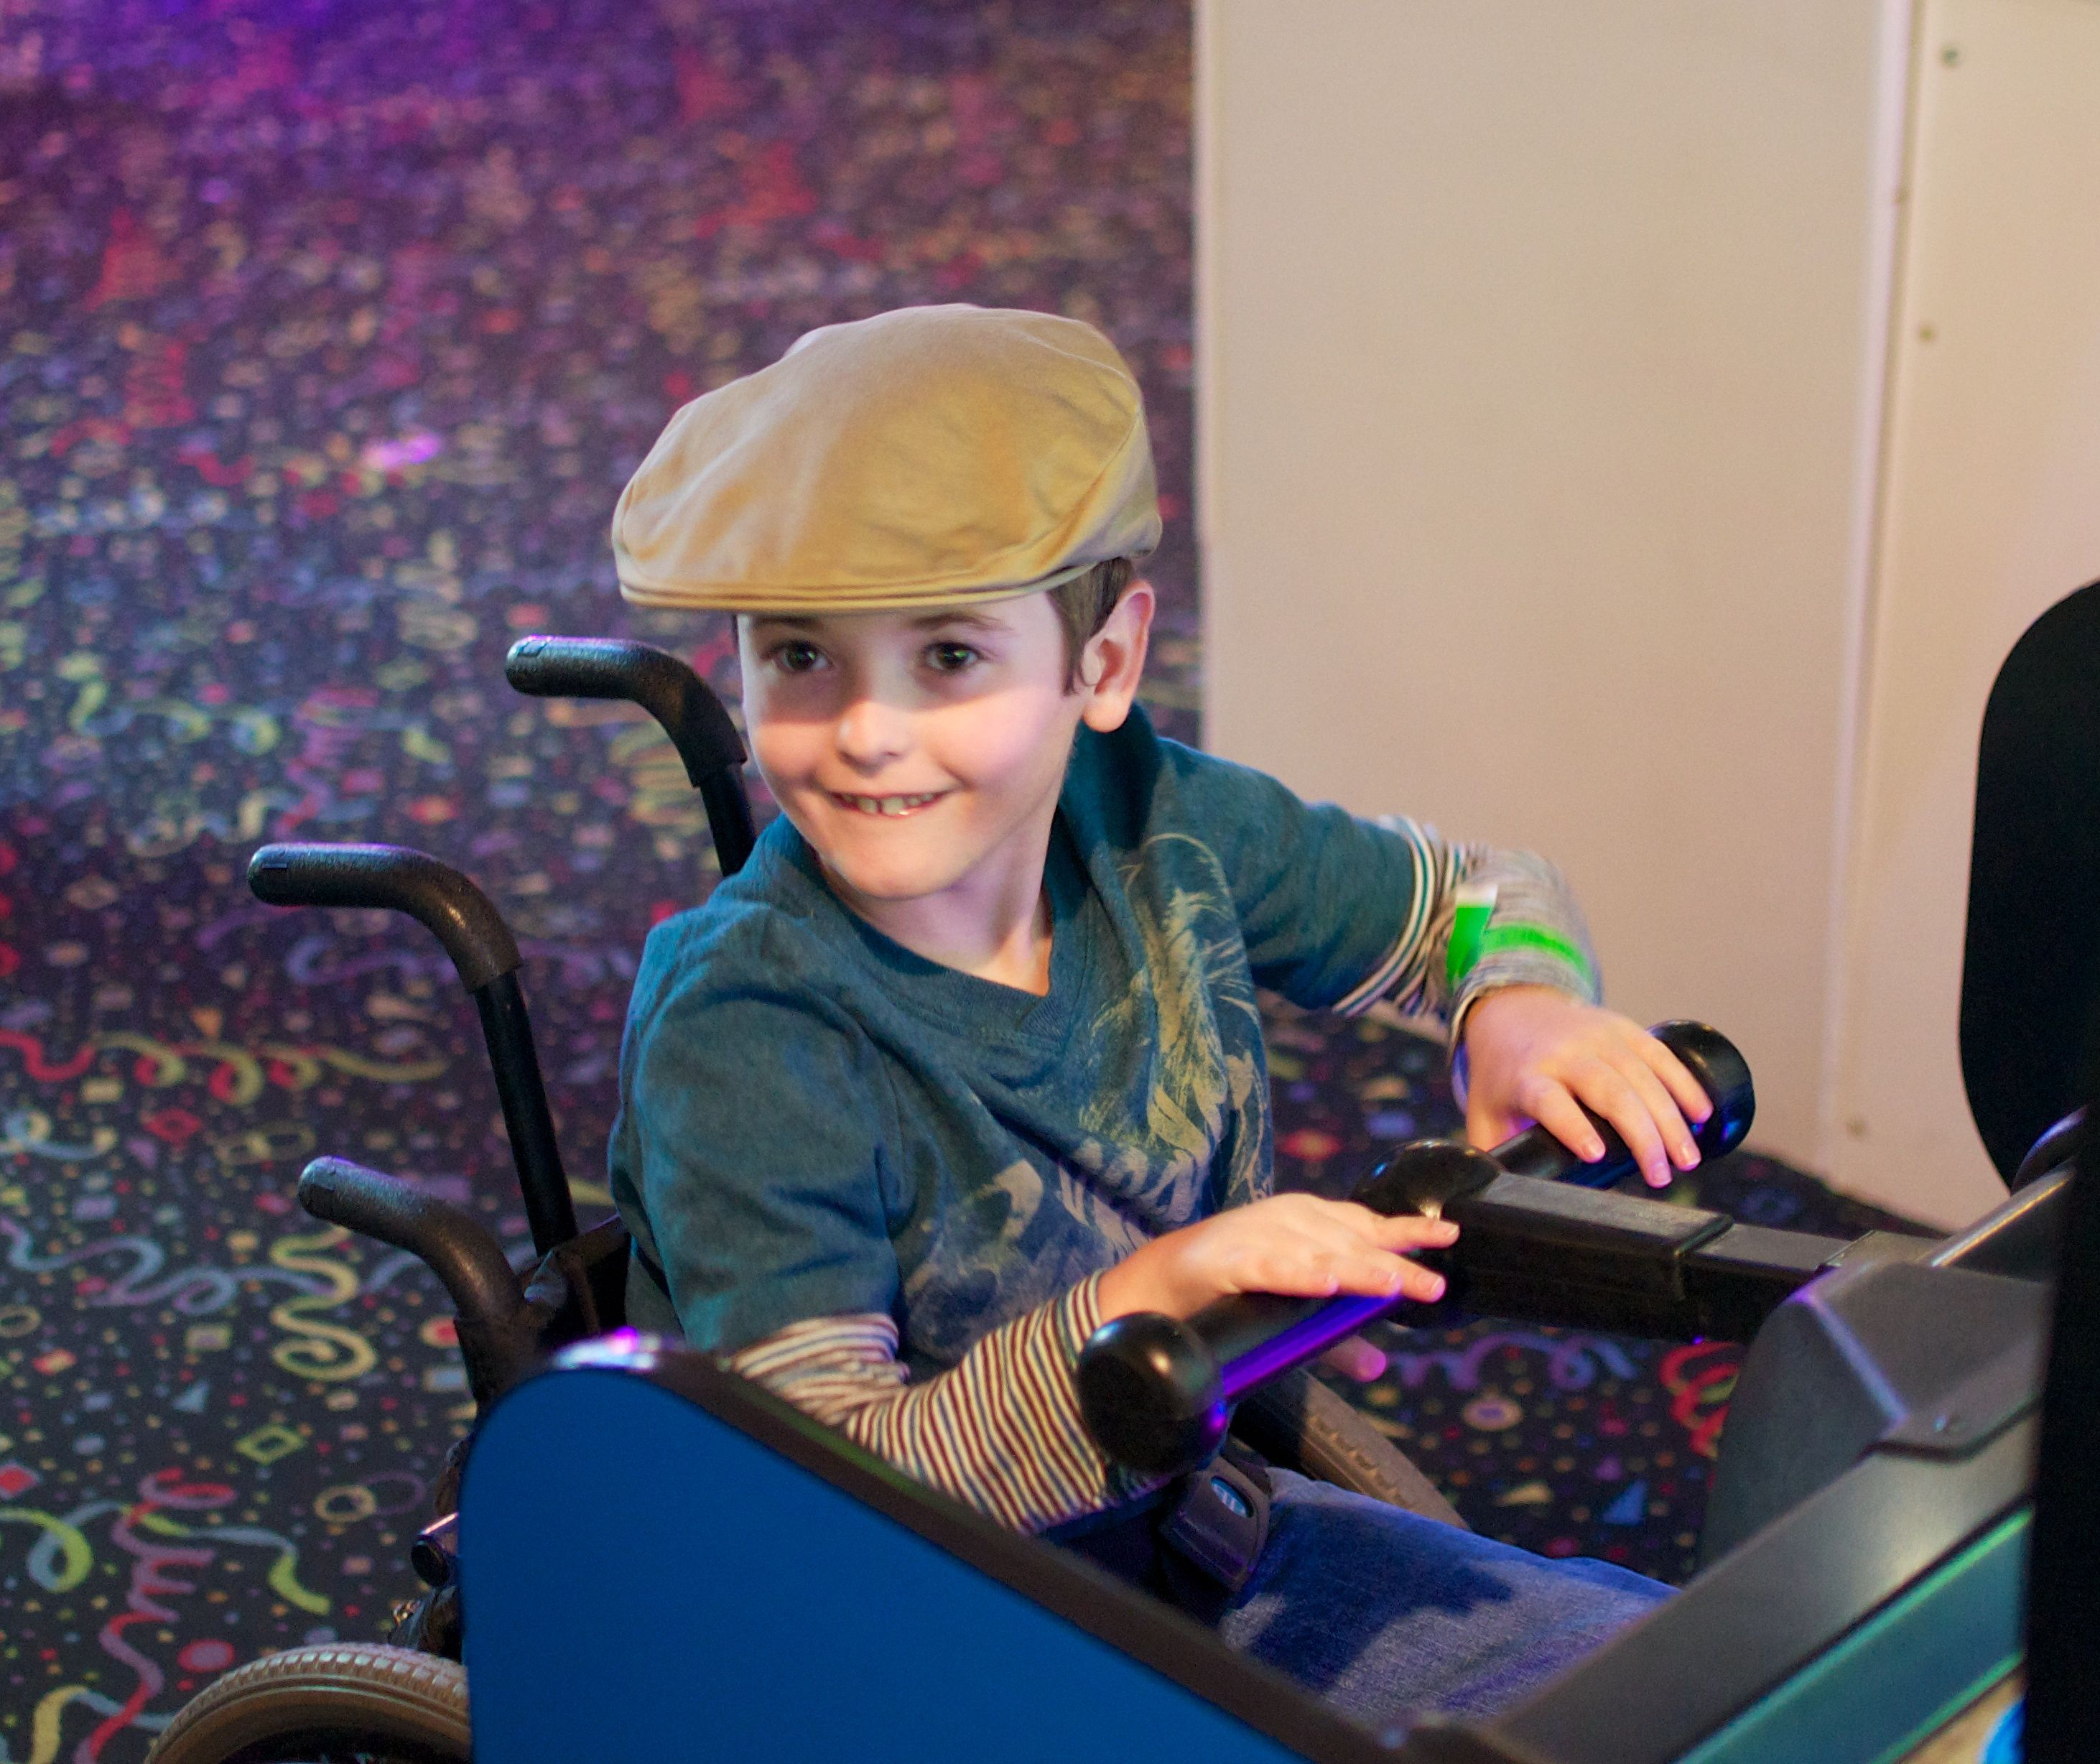 This adorable little boy is enjoying improved wheelchair accessibility at Jungle Rapids!